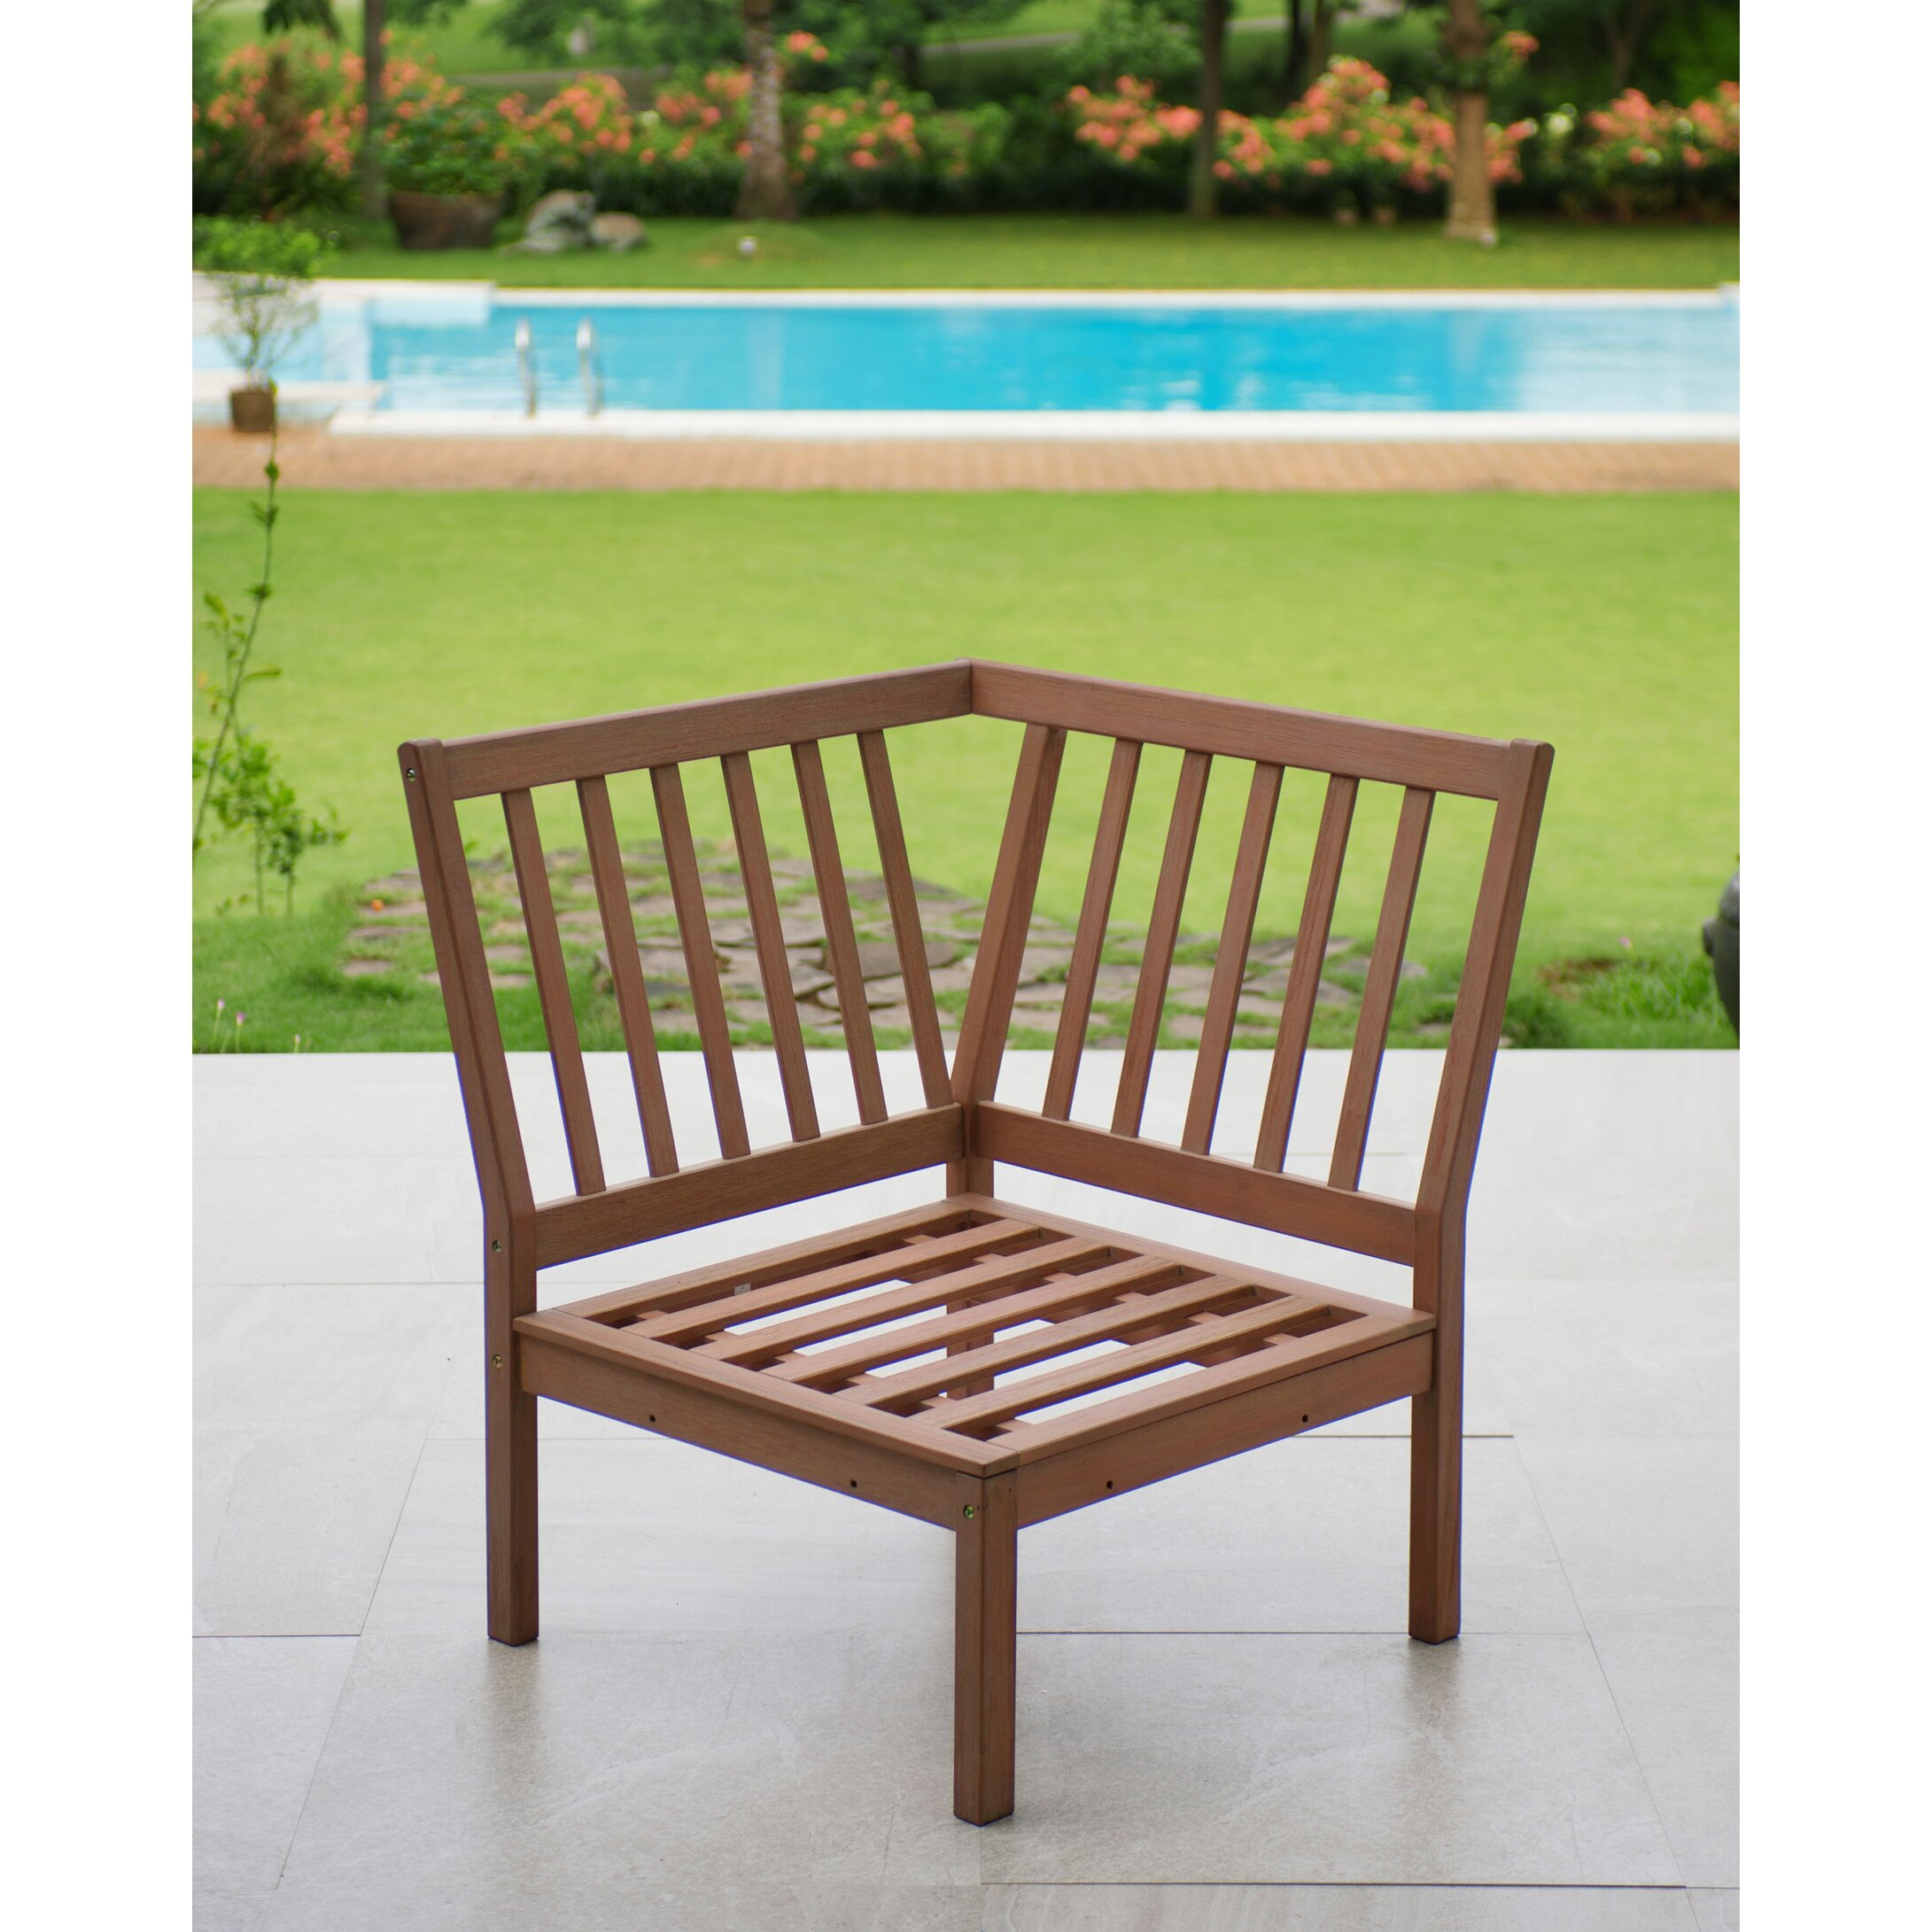 Willow Corner Lounge Chair with Cushion